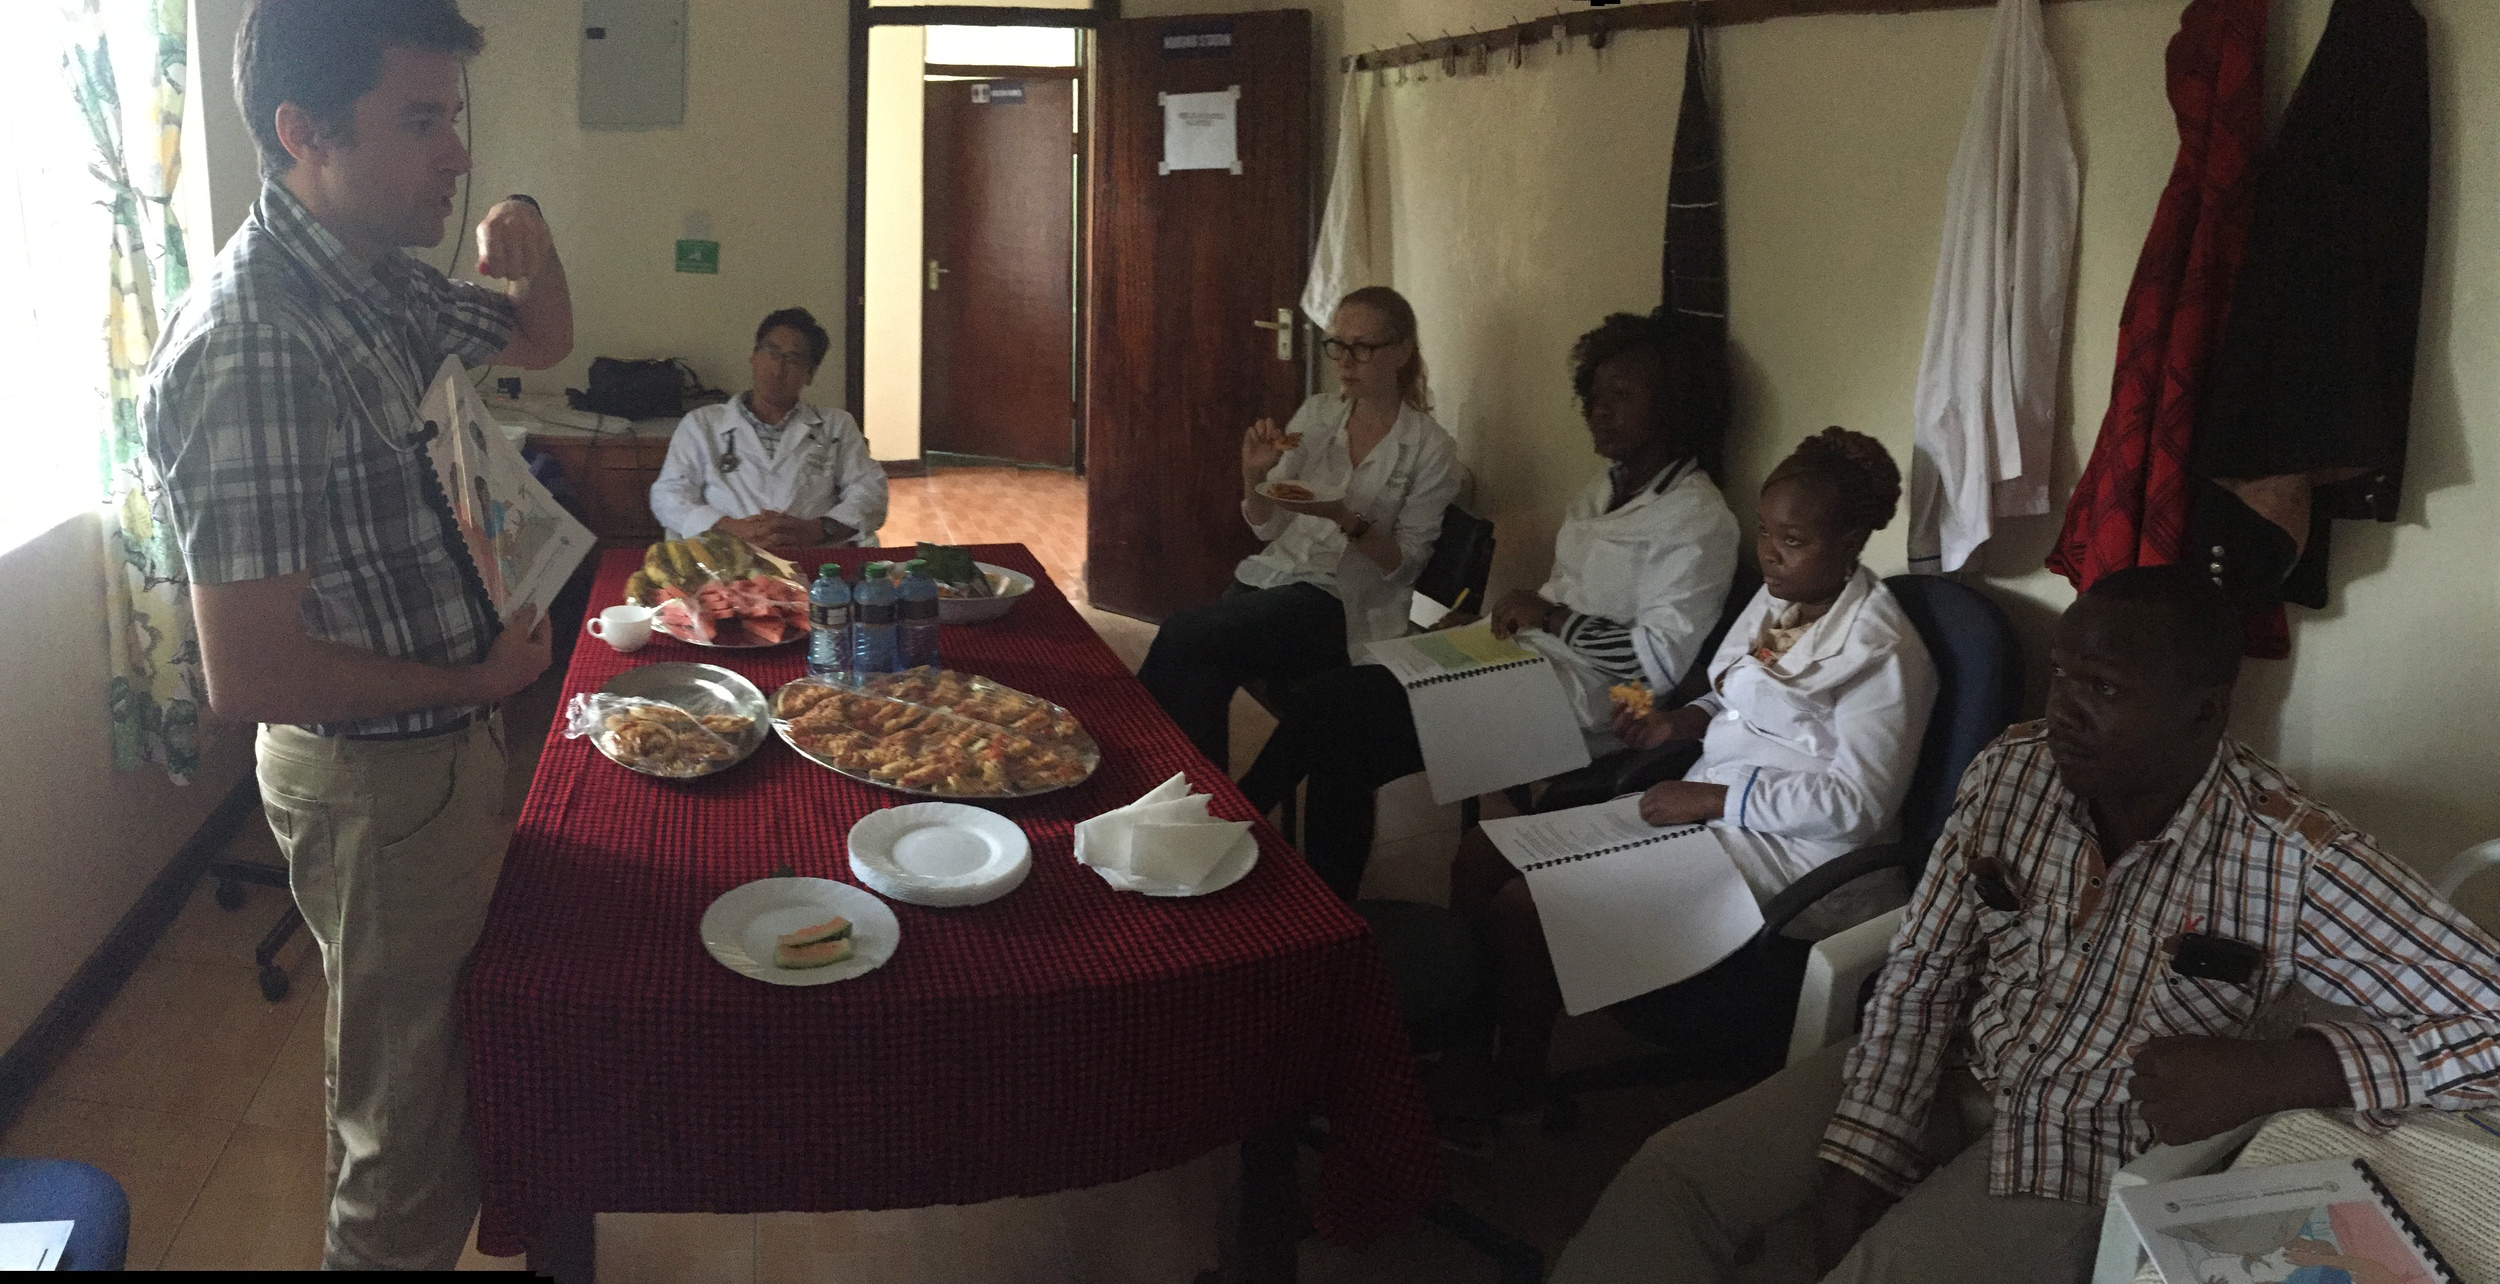 Dr. Michael teaching a course on Helping Babies Breathe to the Fluorspar staff.